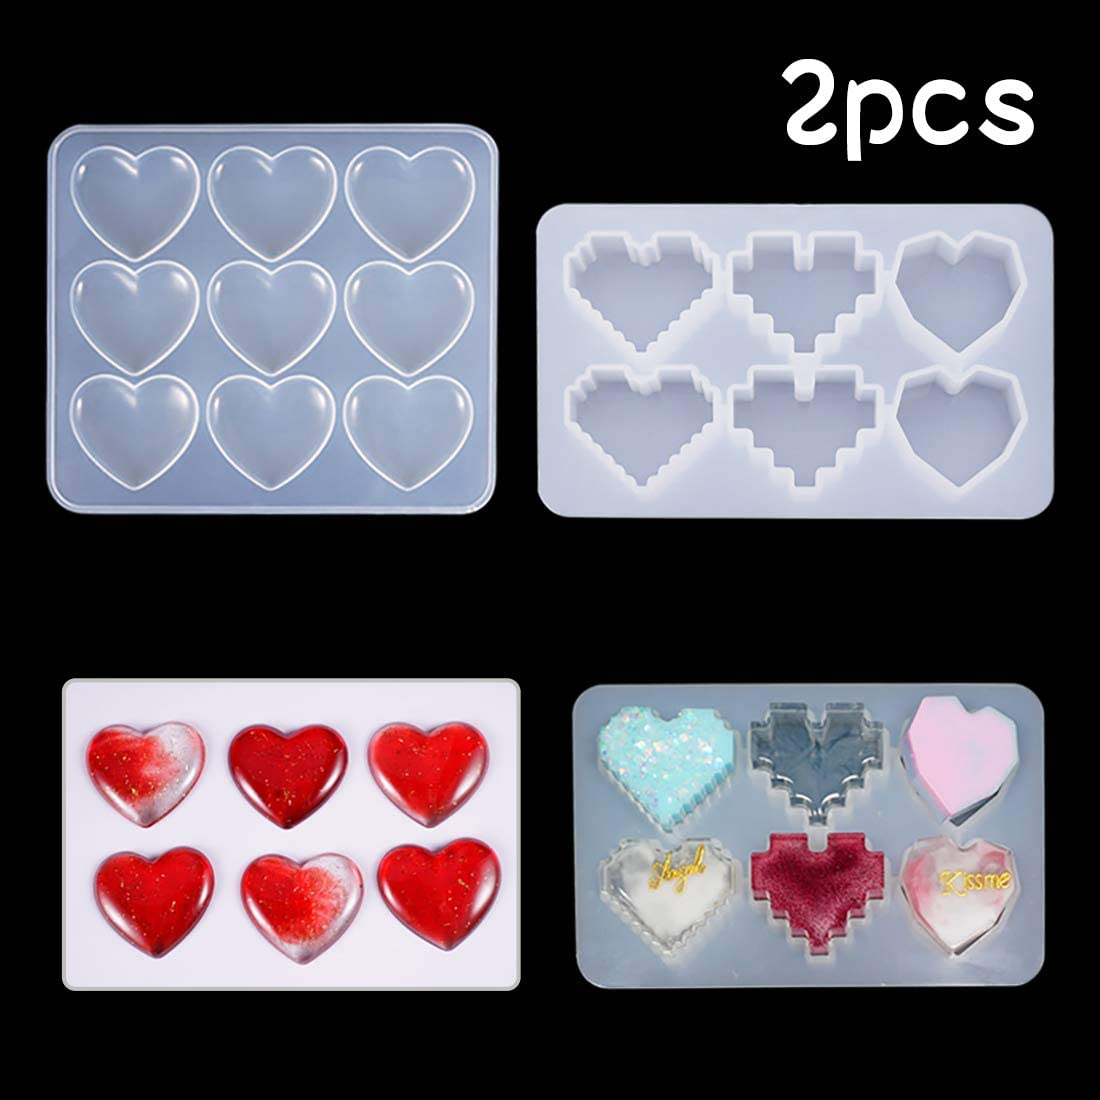 Heart Shape Silicone Mold 9-Cavity Clear Shiny DIY Resin Puffy Epoxy Jewelry